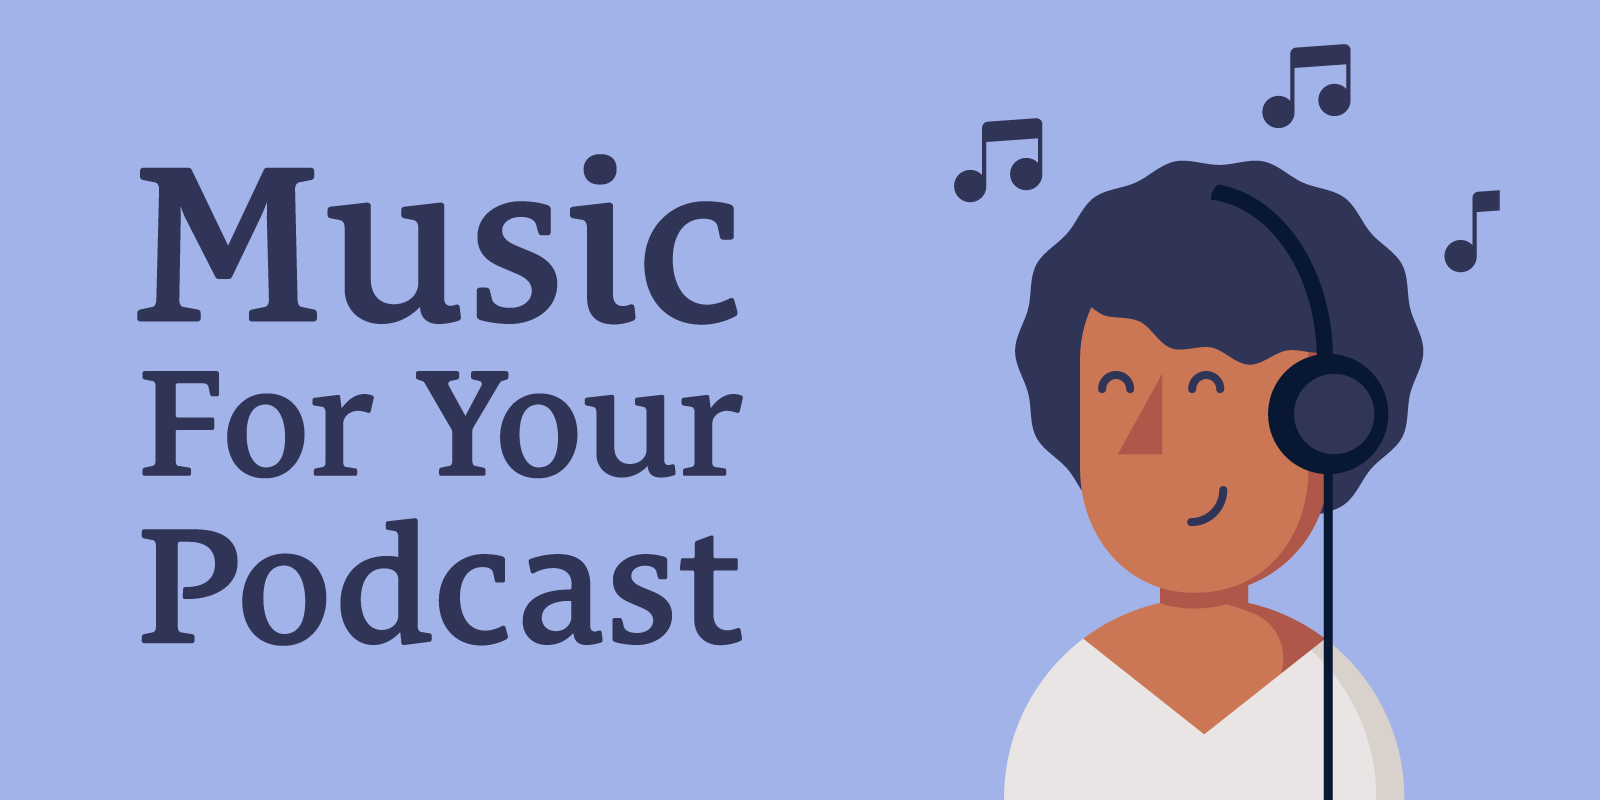 The Podcast Dude 52: Where to Find the Best Music For Your Podcast